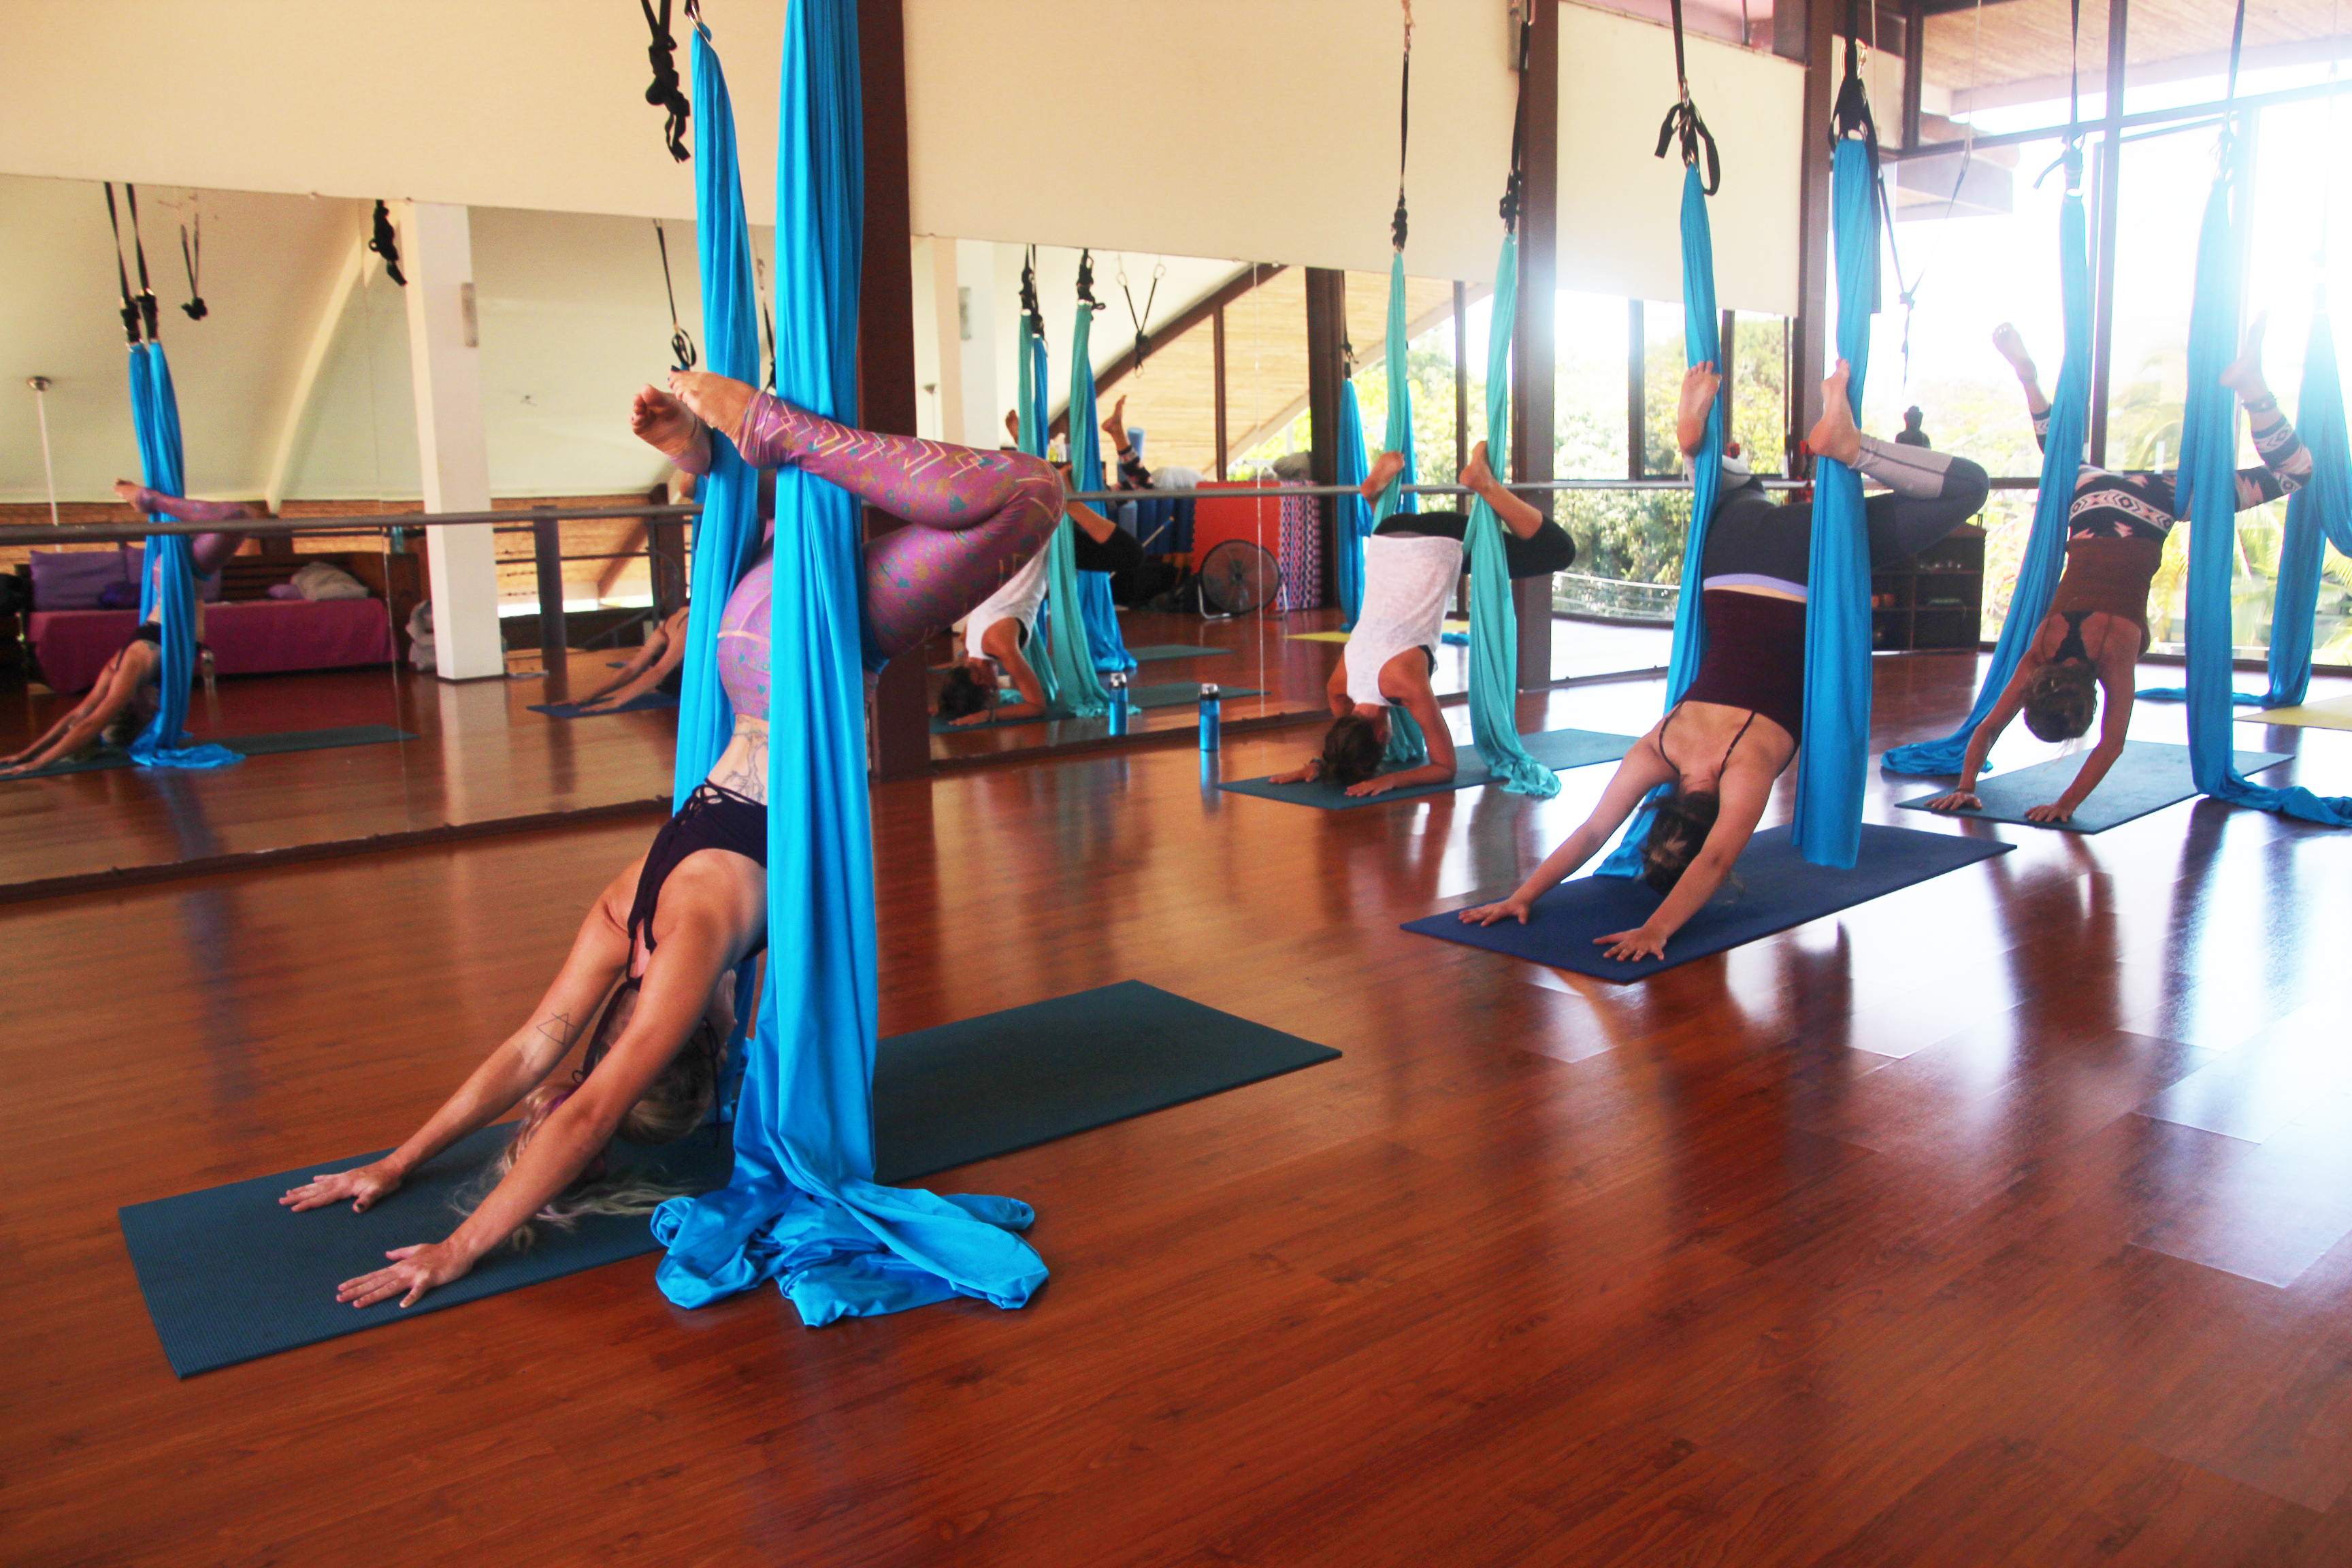 How to Break 3 Myths About Being a Spiritual Entrepreneur lindsay nova costa rica travel aerial yoga teacher